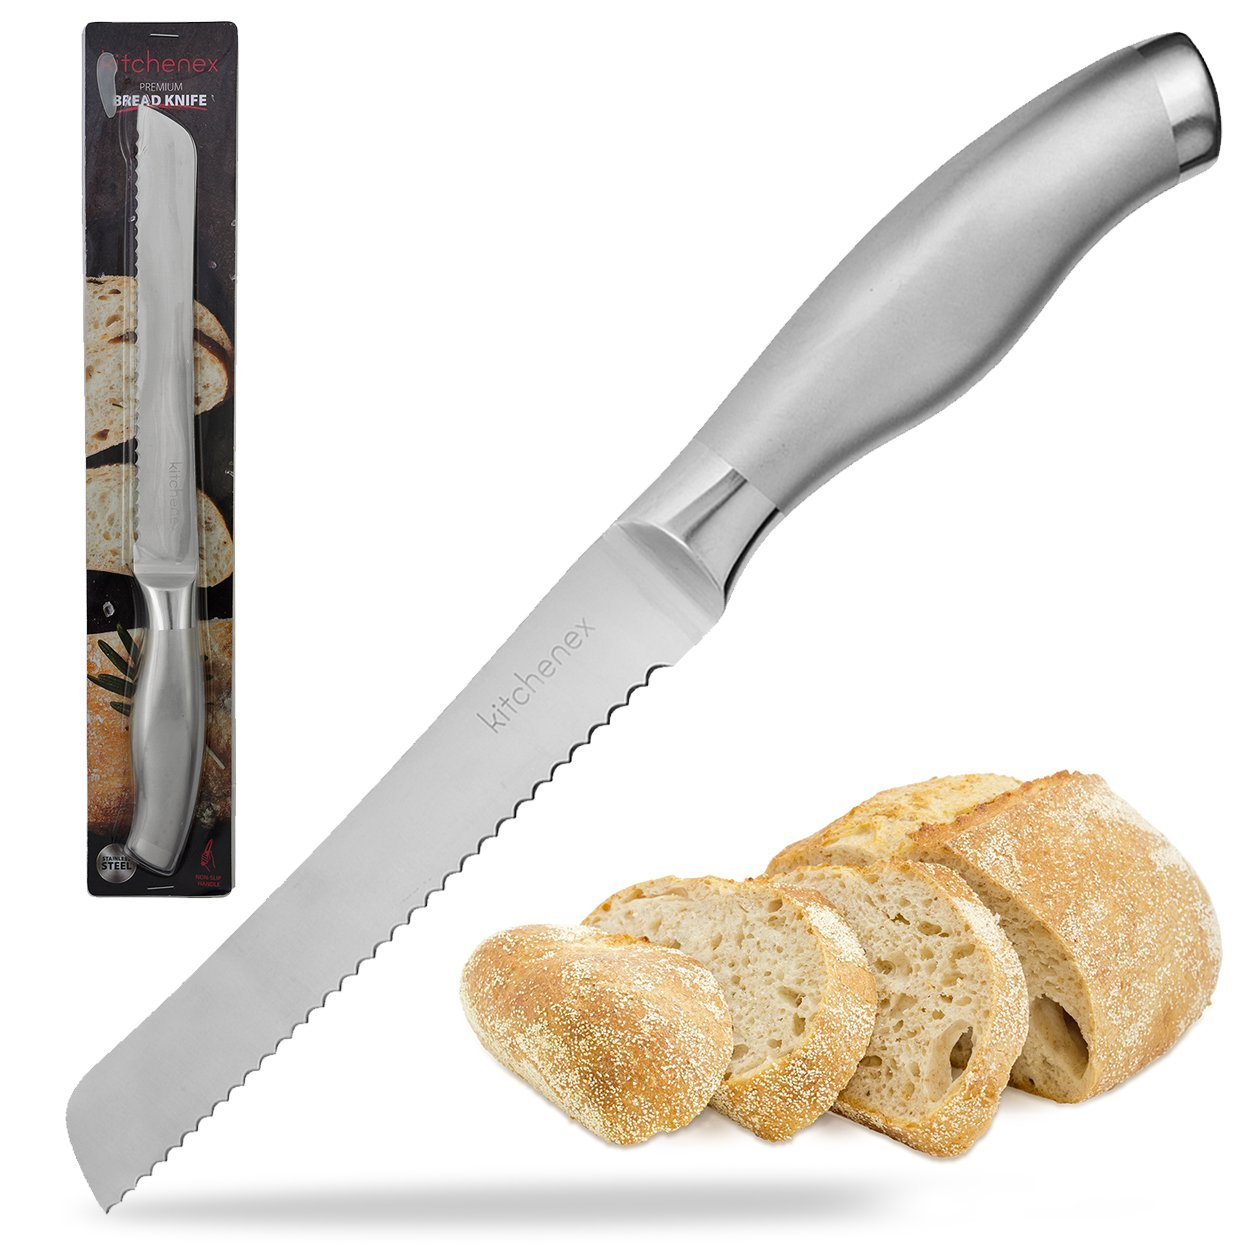 """Kitchenex Stainless Steel Bread Knife With 8"""" Ultra Sharp Serrated Blades – Multipurpose Kitchen Knife With Comfortable Ergonomic Handle – Rustproof Bread Slicer For Thick Loaves,Cake,Bagel,Pastries"""